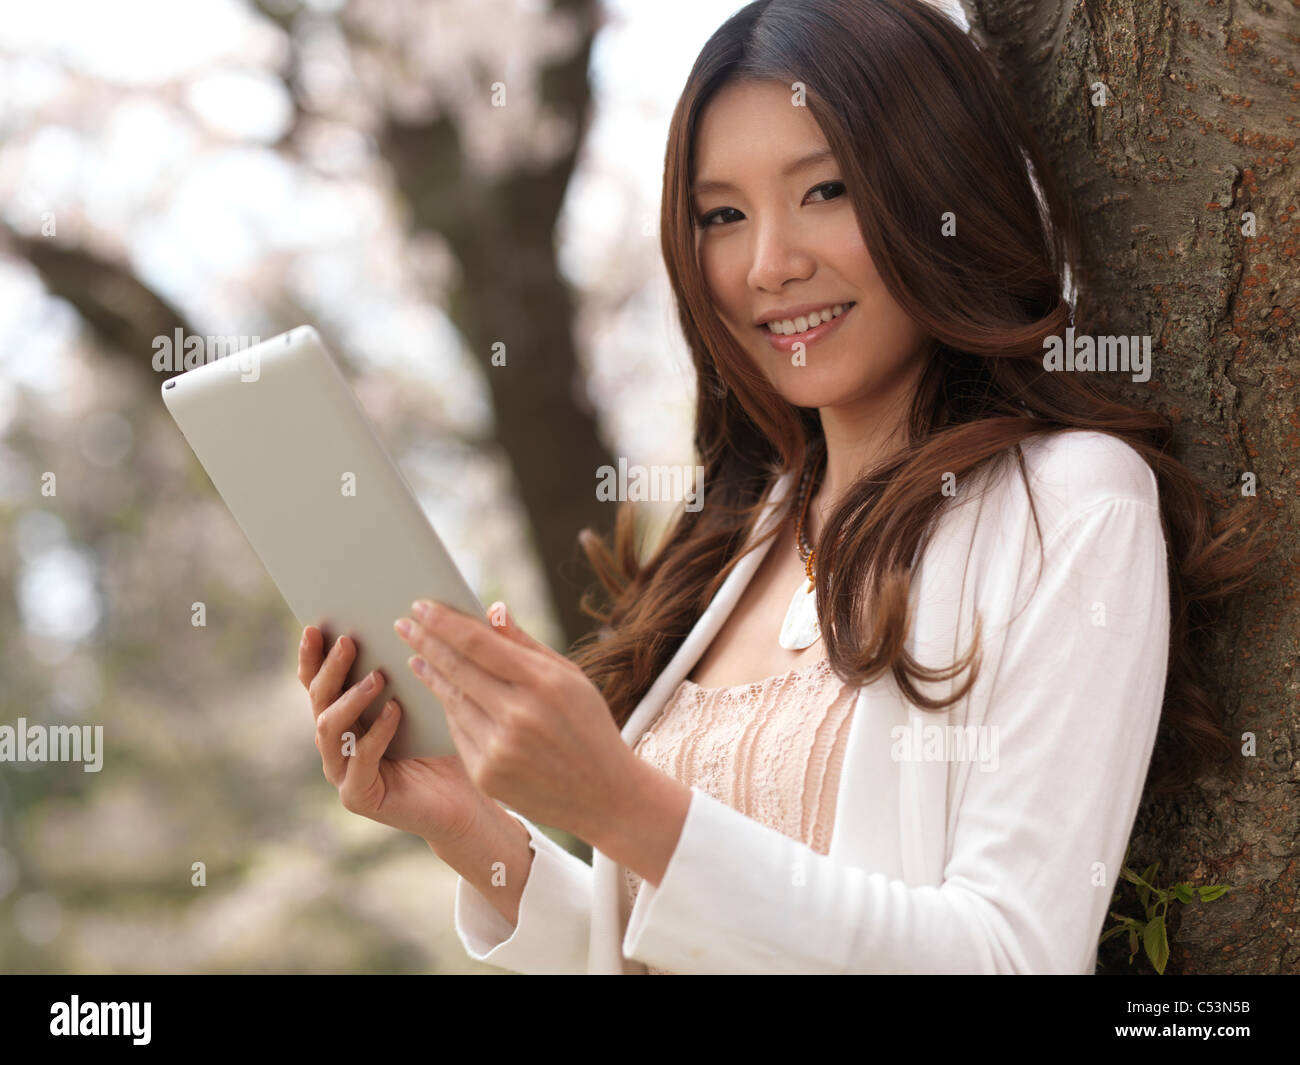 Young smiling Asian woman with a tablet computer in a park under a cherry tree - Stock Image